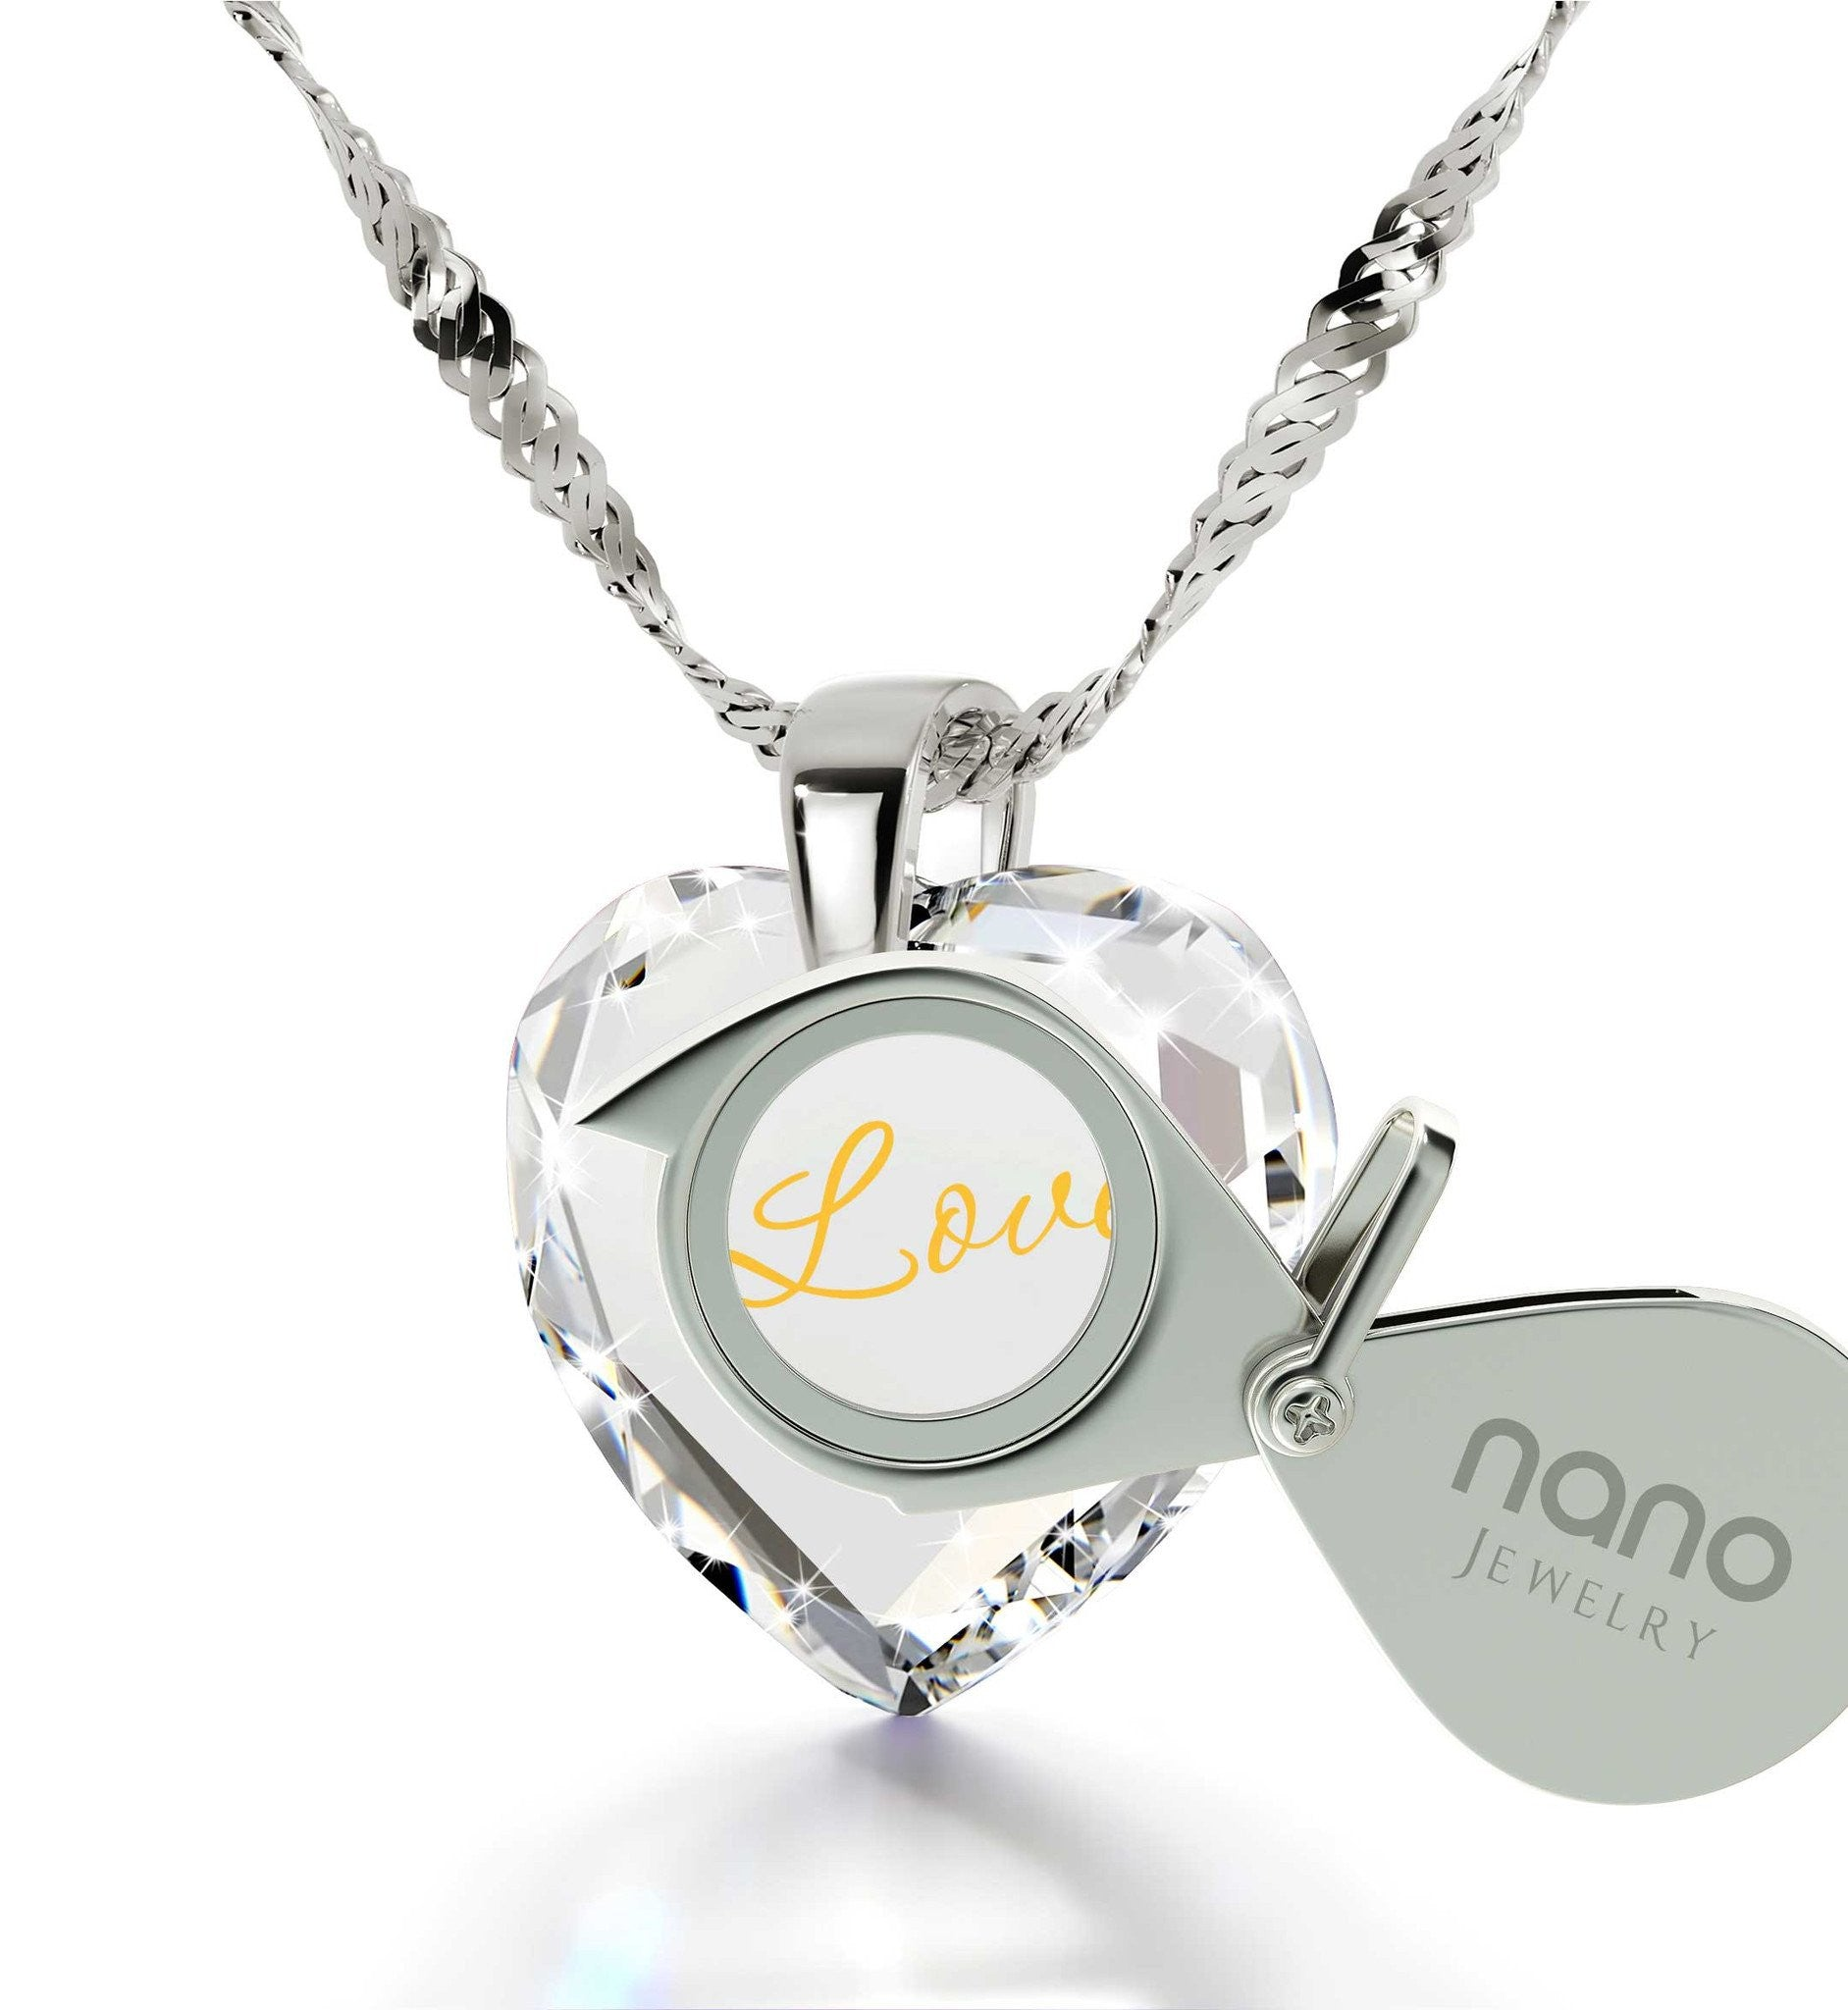 What to Buy My Wife for Christmas, Unique I Love You White Gold Necklaces, 21 Birthday Gifts, by Nano Jewelry